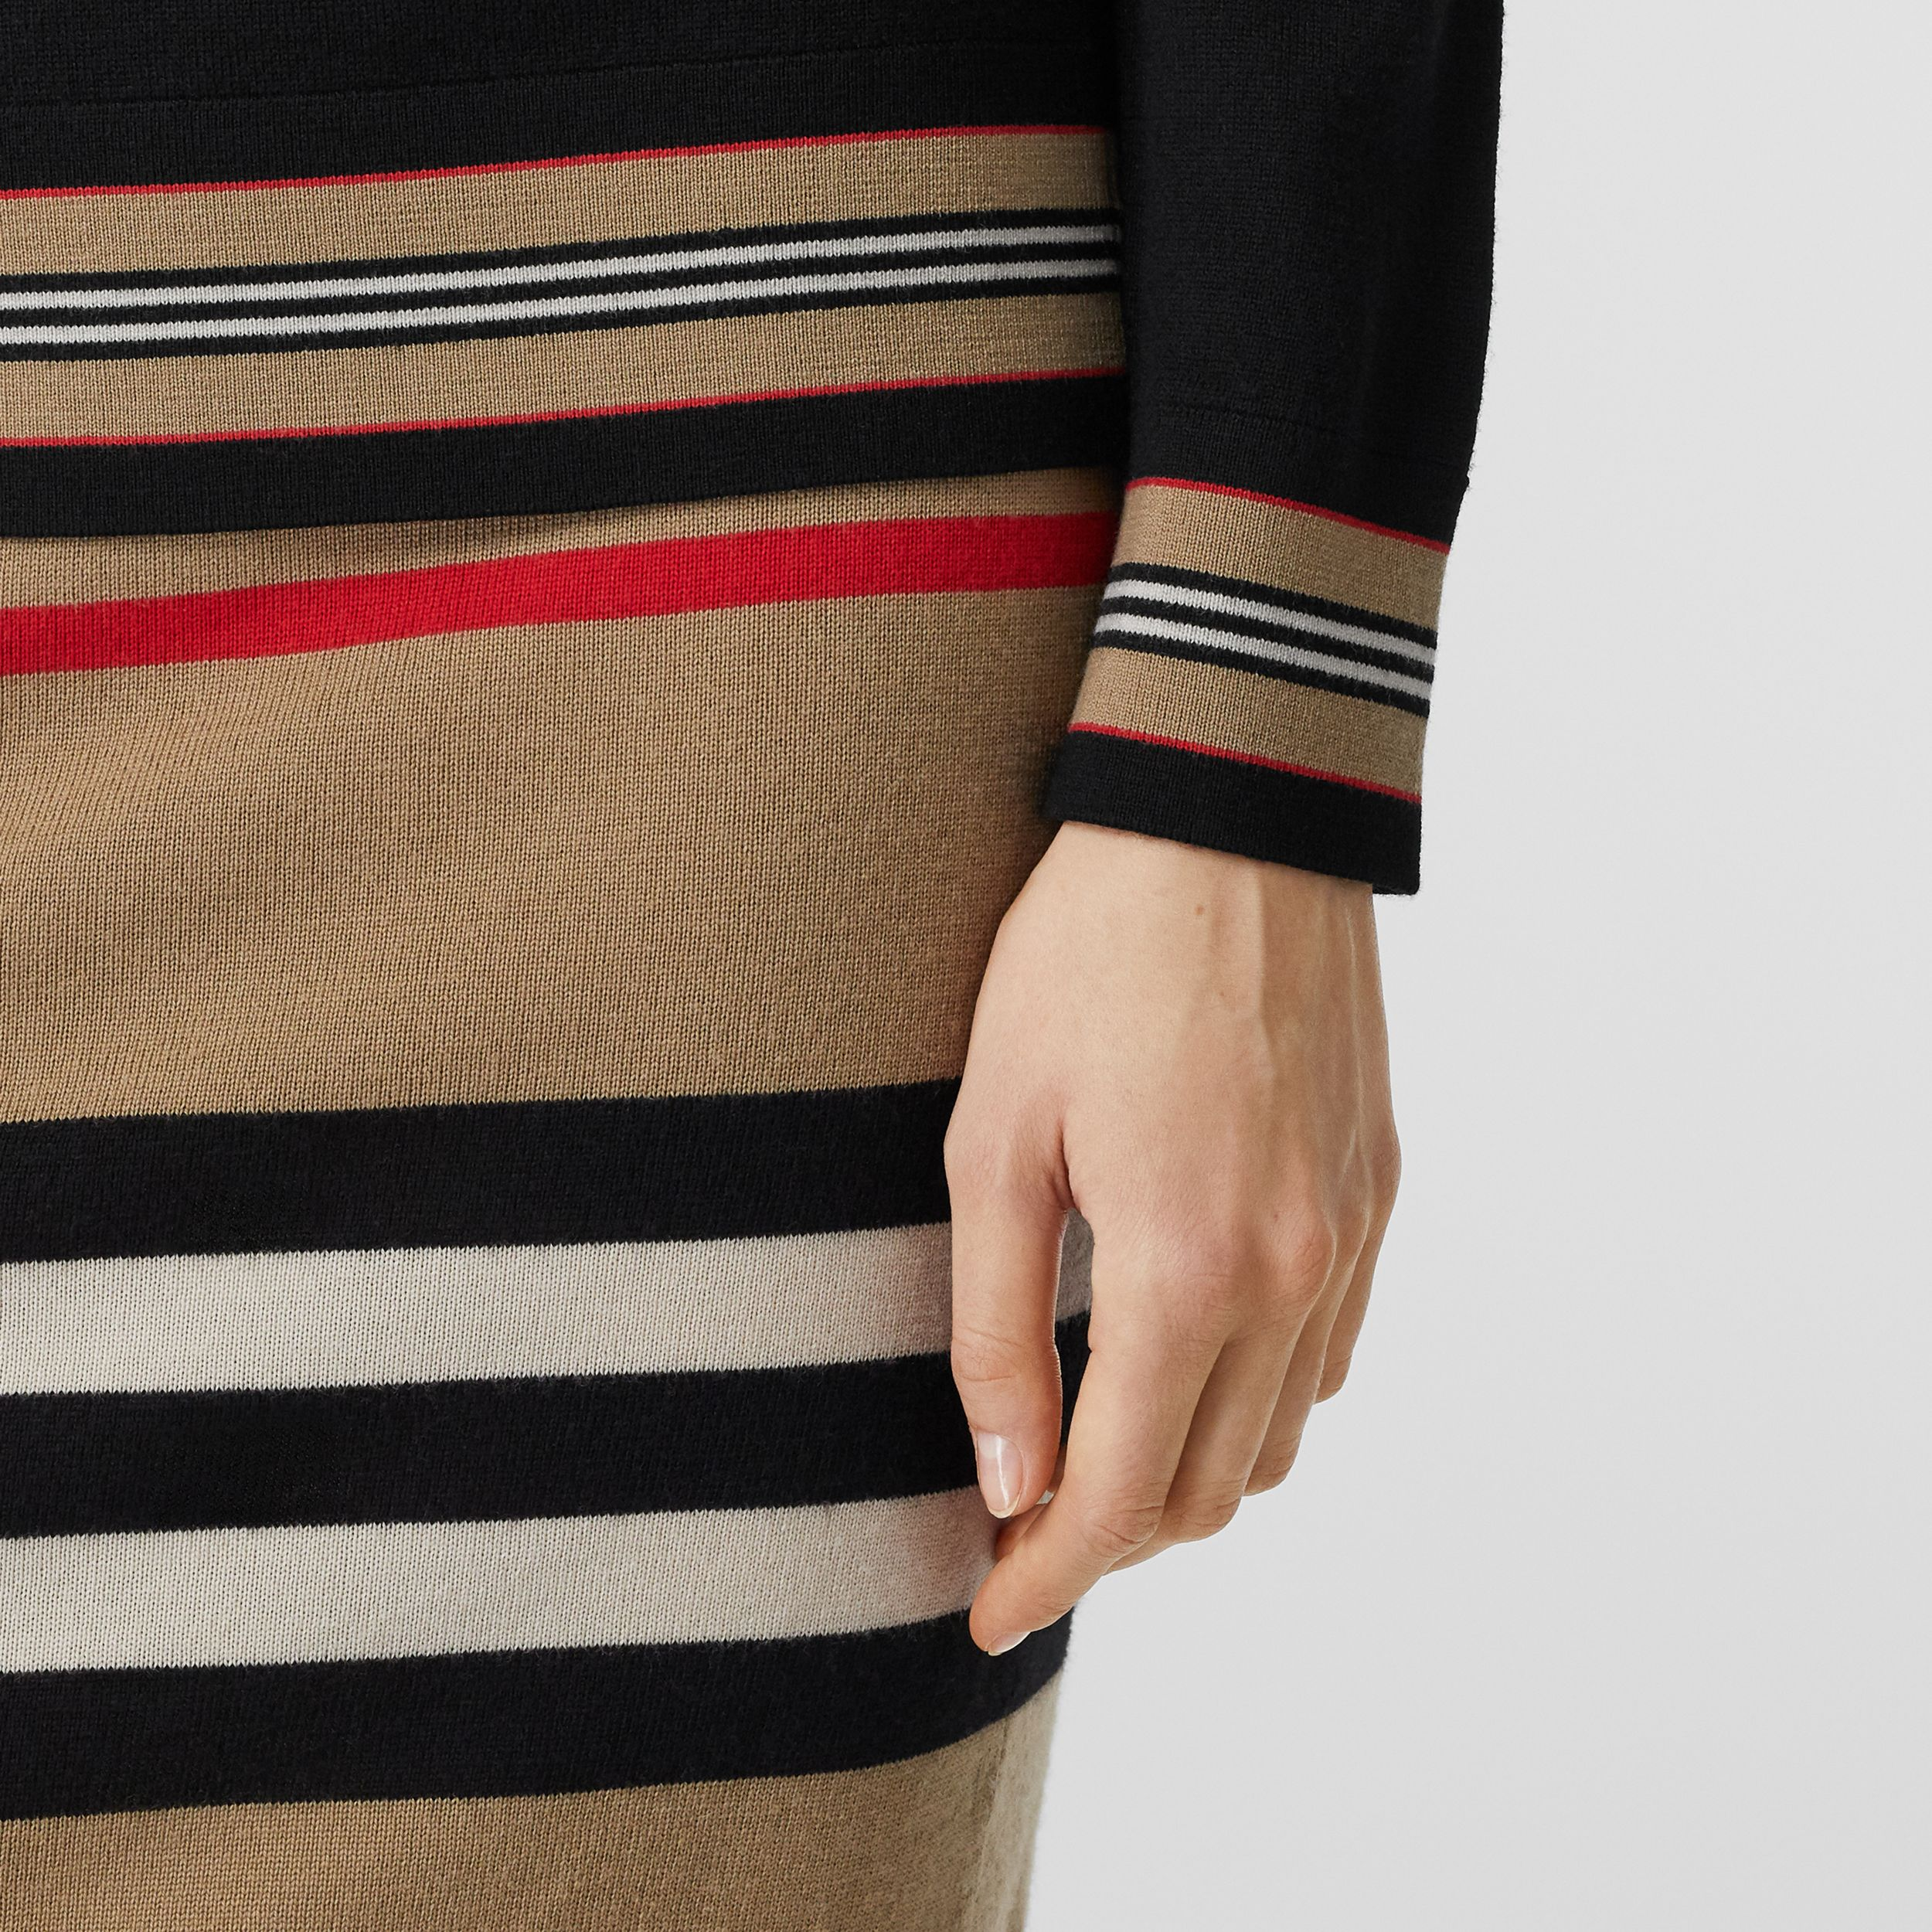 Icon Stripe Detail Merino Wool Sweater in Black - Women | Burberry Canada - 2